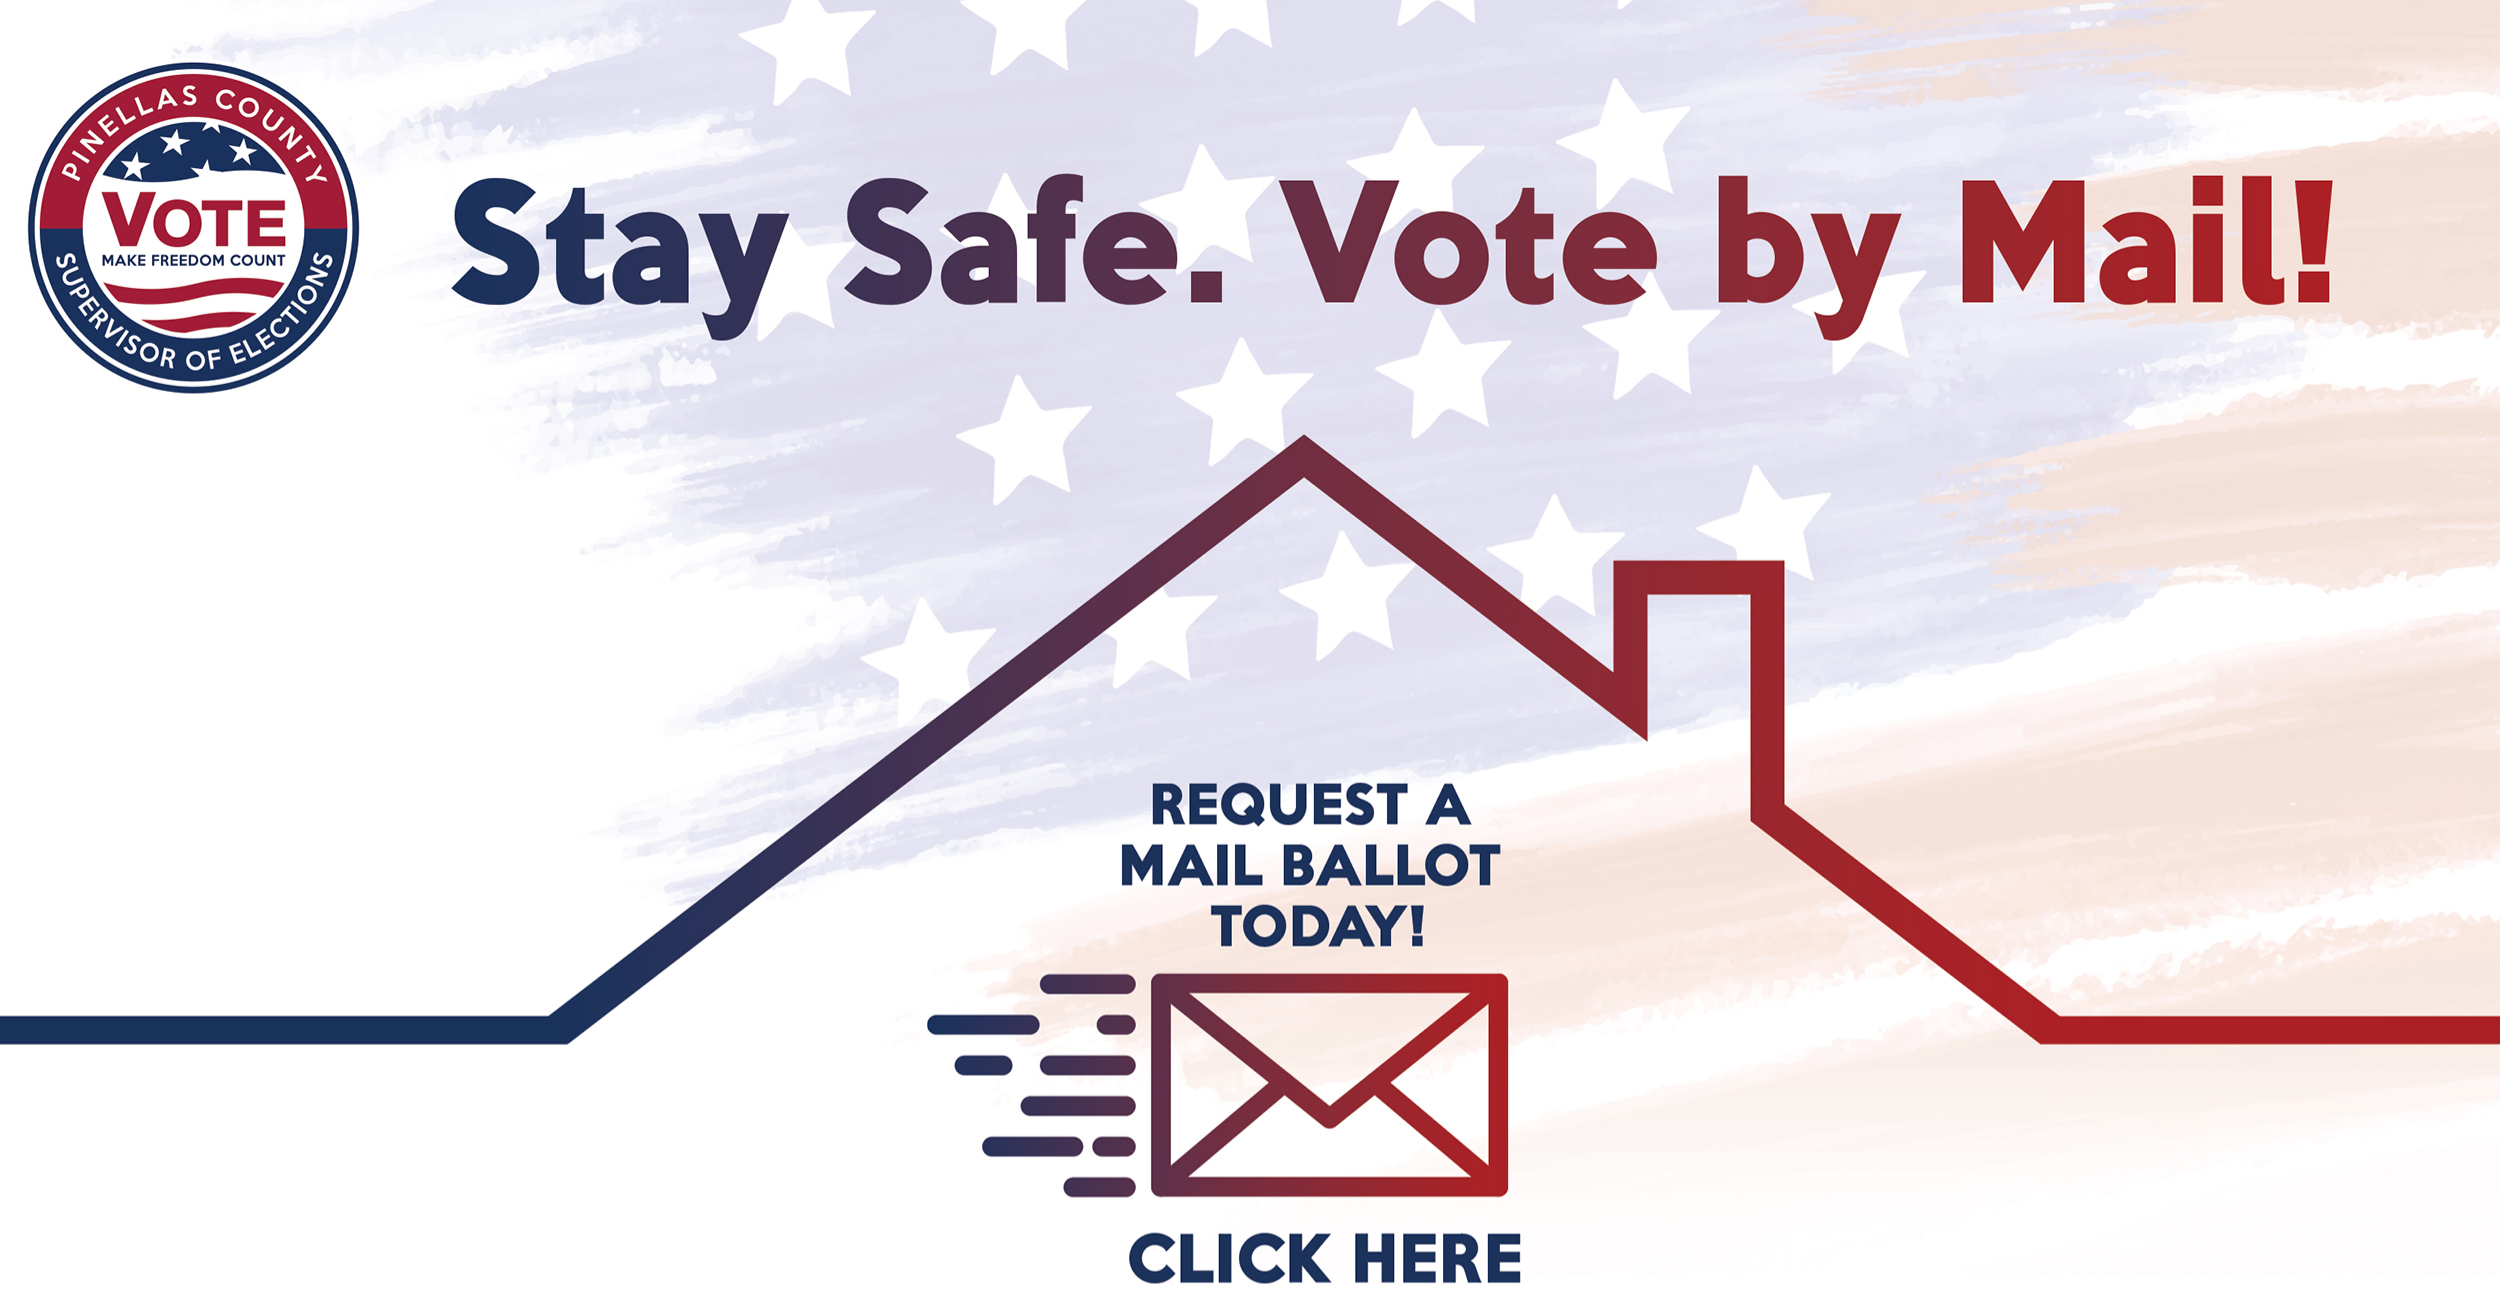 Stay-Safe-Vote-by-Mail-Home-Page-v2